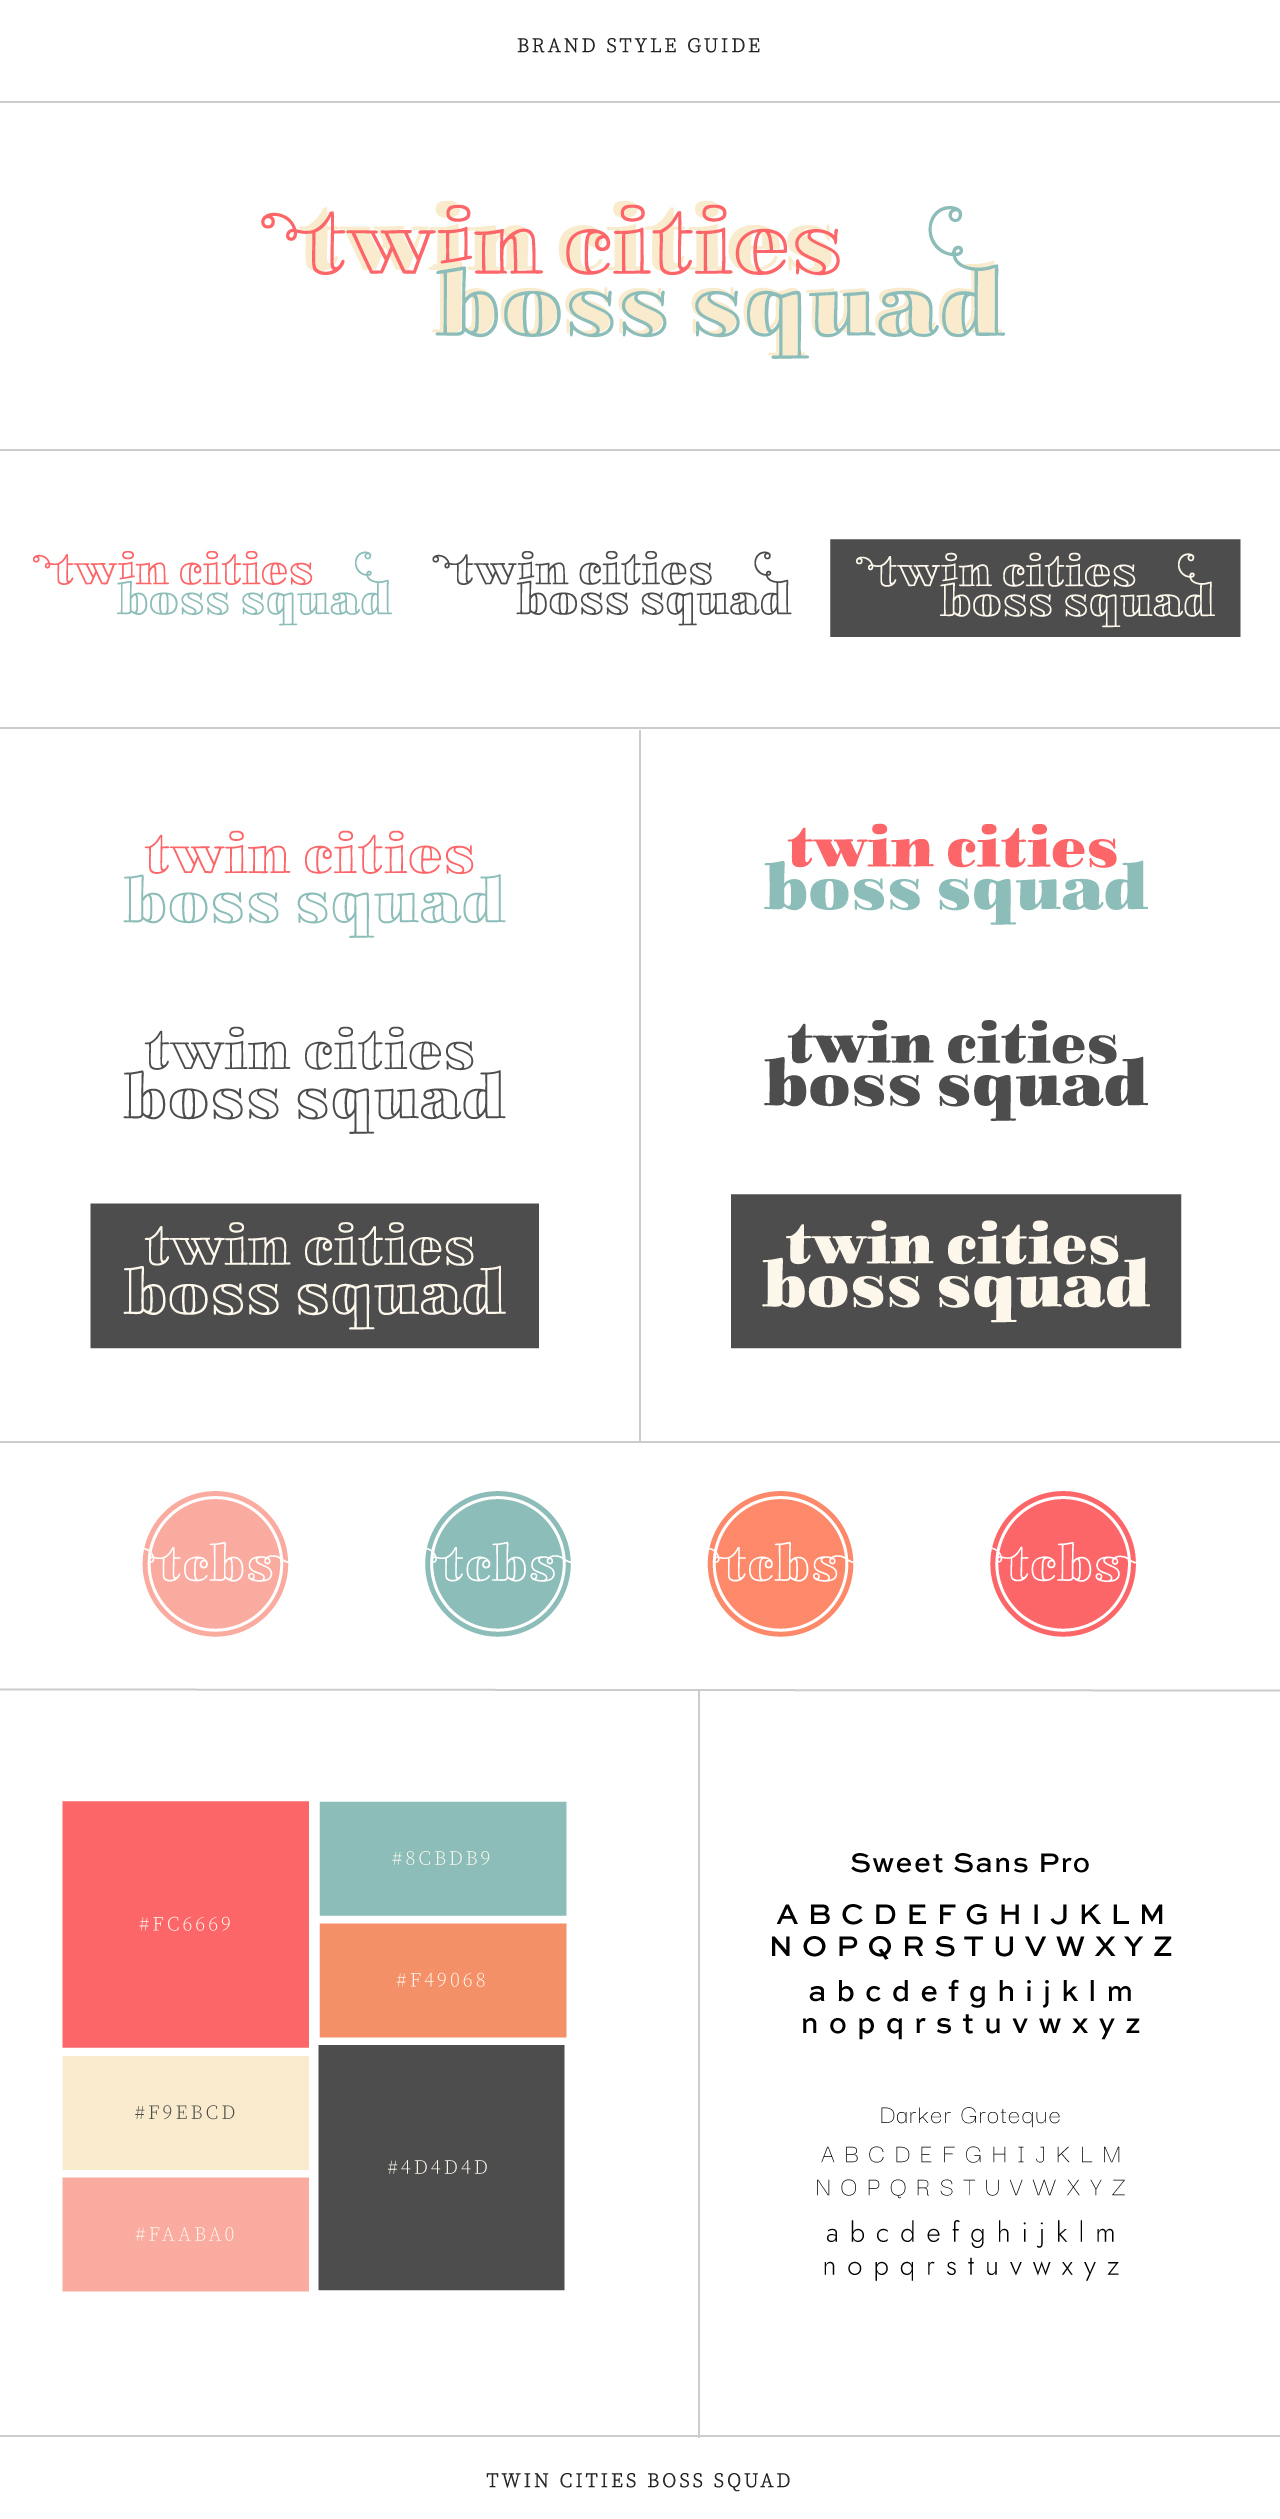 Twin Cities Boss Squad Visual Brand Style Guide | Witt and Company